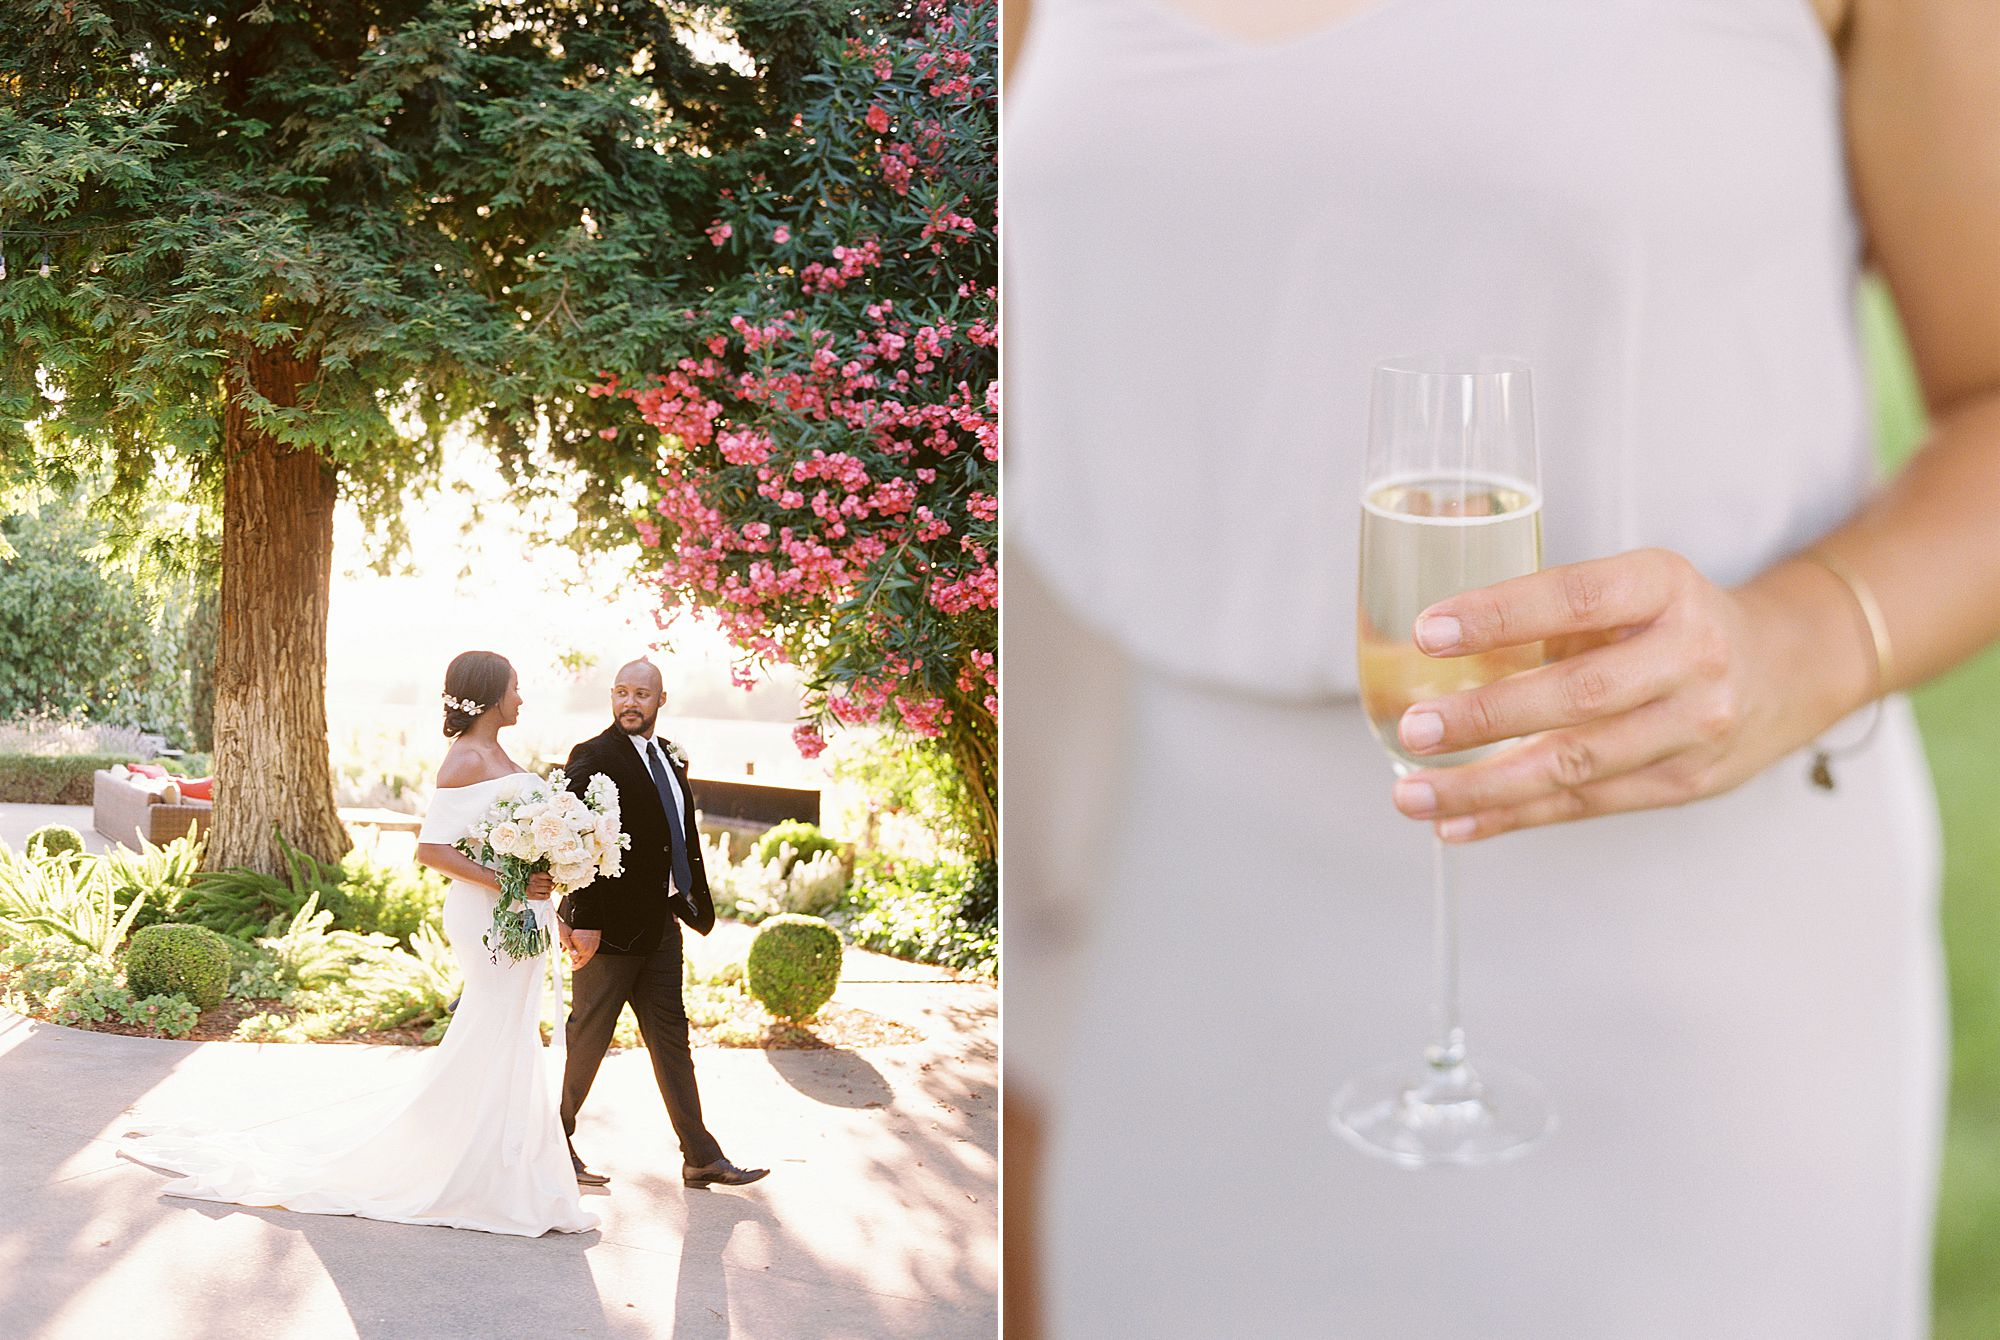 Park Winters Micro-Wedding Inspiration on Style Me Pretty - Stephanie Teague Events - Ashley Baumgartner - Park Winters Wedding - Black Tie Wedding - Micro-Wedding Sacramento Photographer_0079.jpg